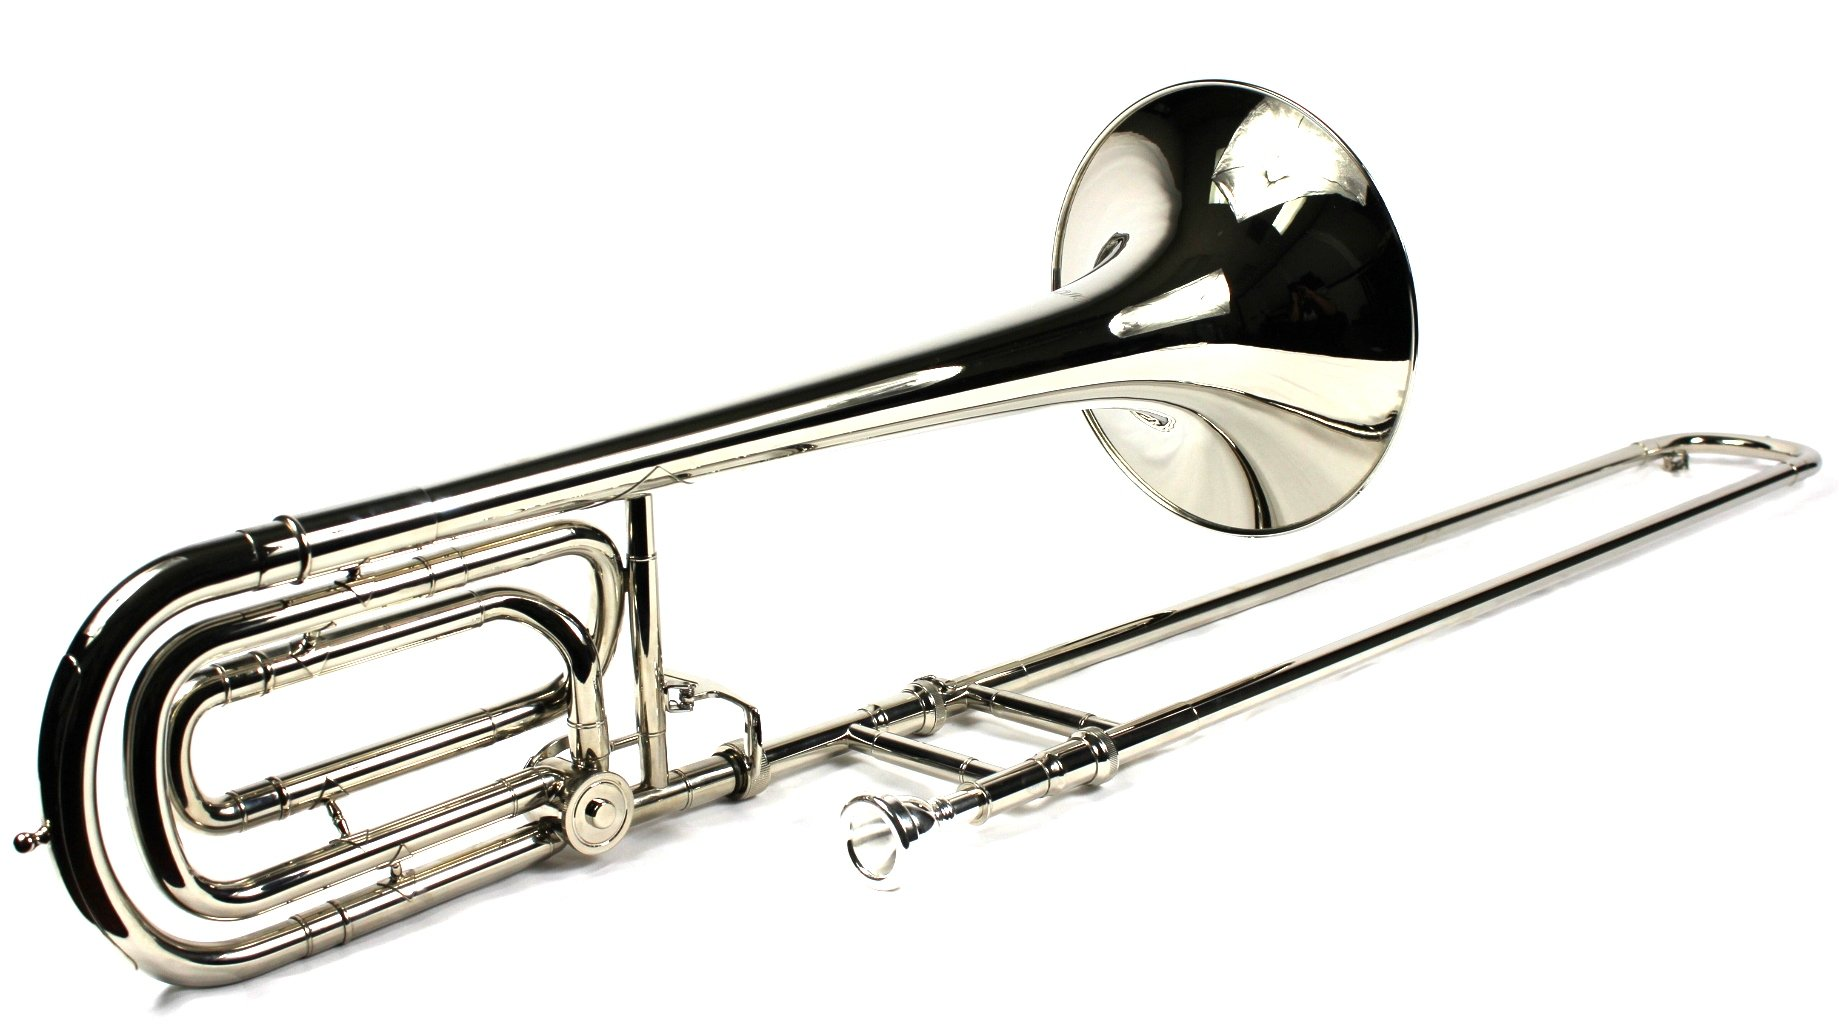 Brand New Bb/F Bass Trombone w/ Case and Mouthpiece- Nickel Plated Finish by Moz (Image #2)